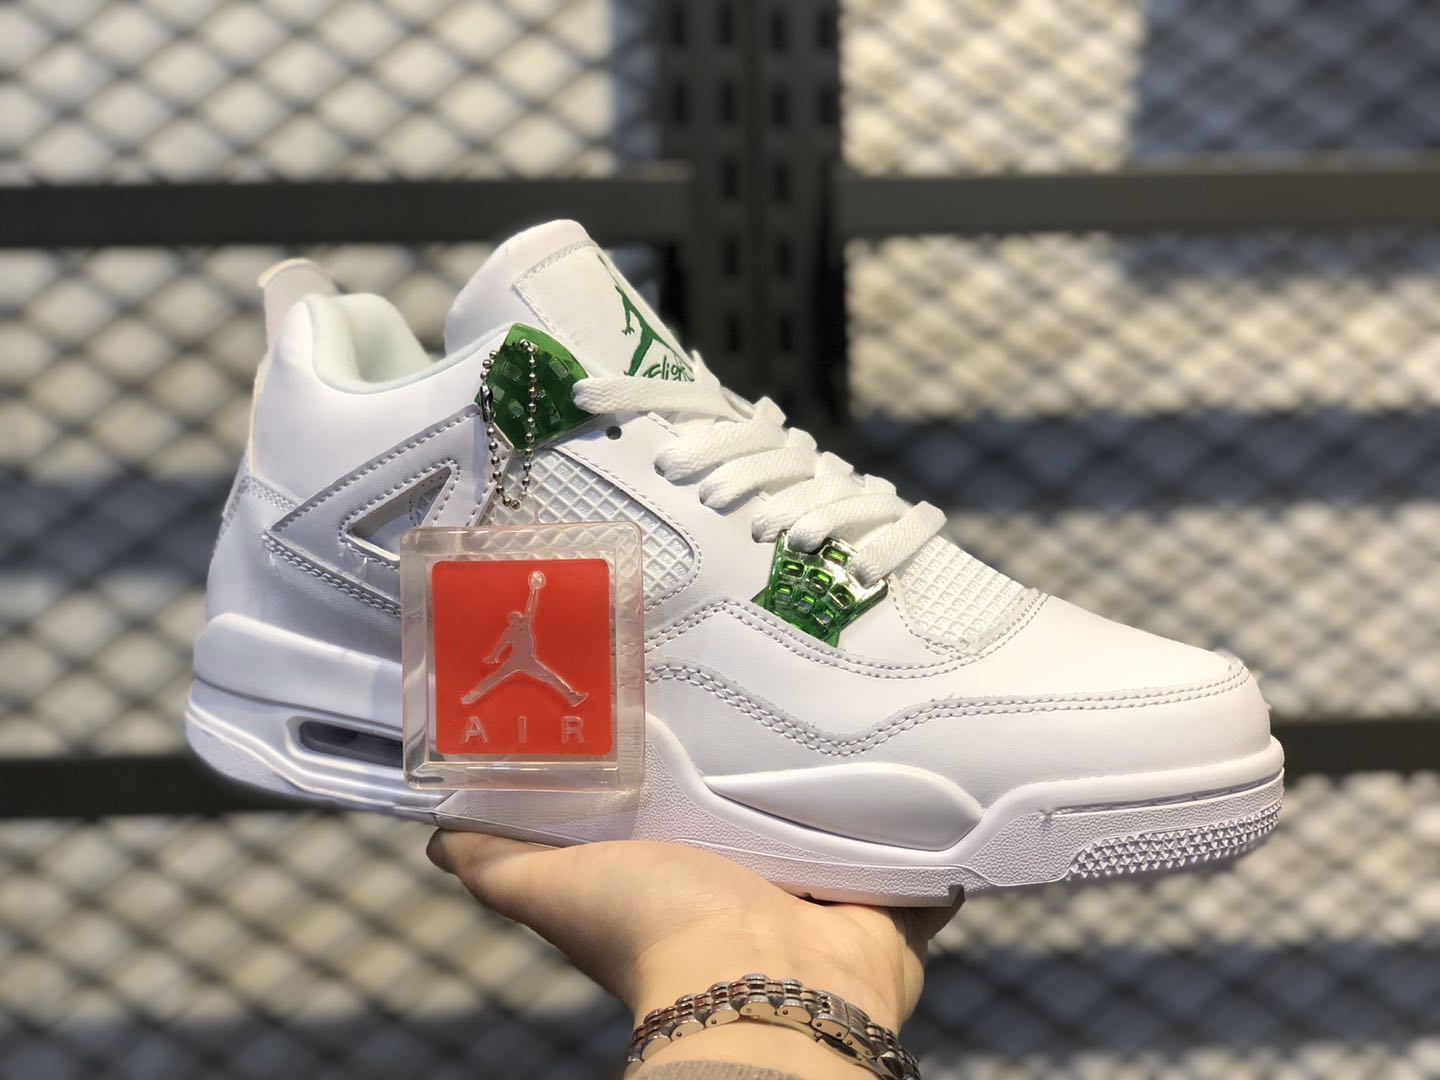 Air Jordan 4 White/Pine Green-Metallic Silver CT8527-113